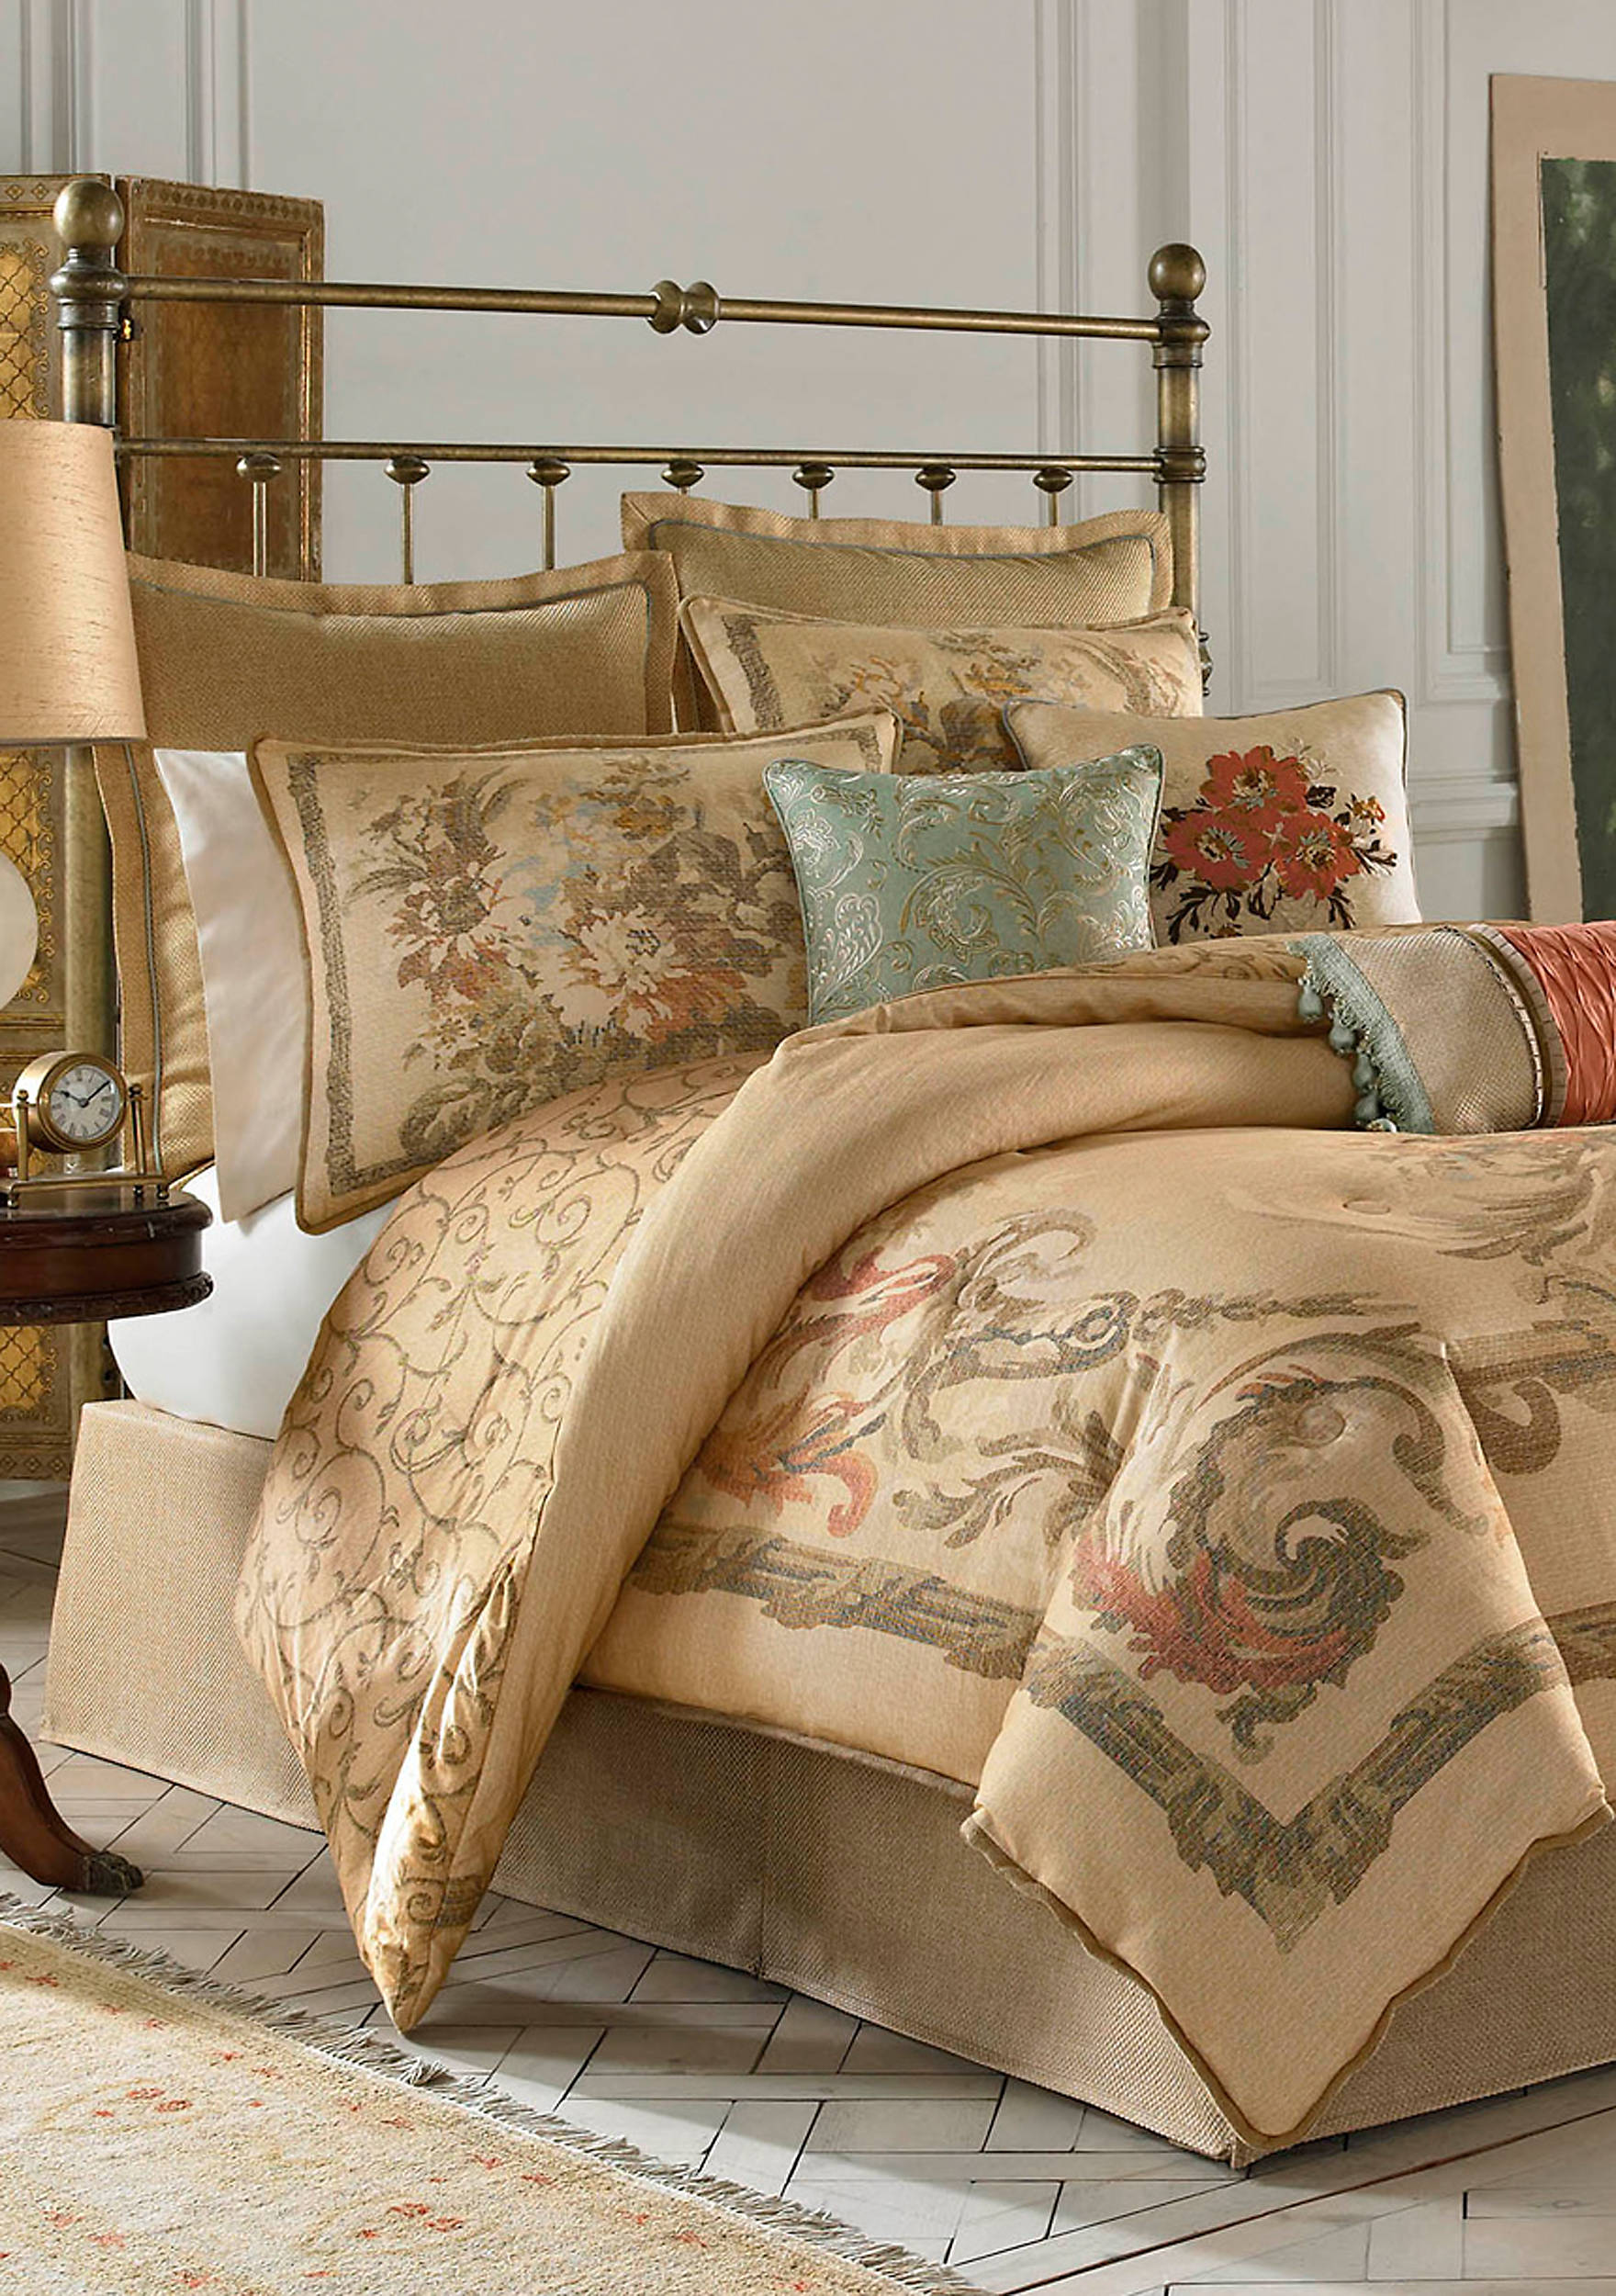 iris discontinued boscovs king normandy croscillter comforters bedding croscill at blue bed sale comforter dillards set outlet canada sets bath clearanceters bedroom collections